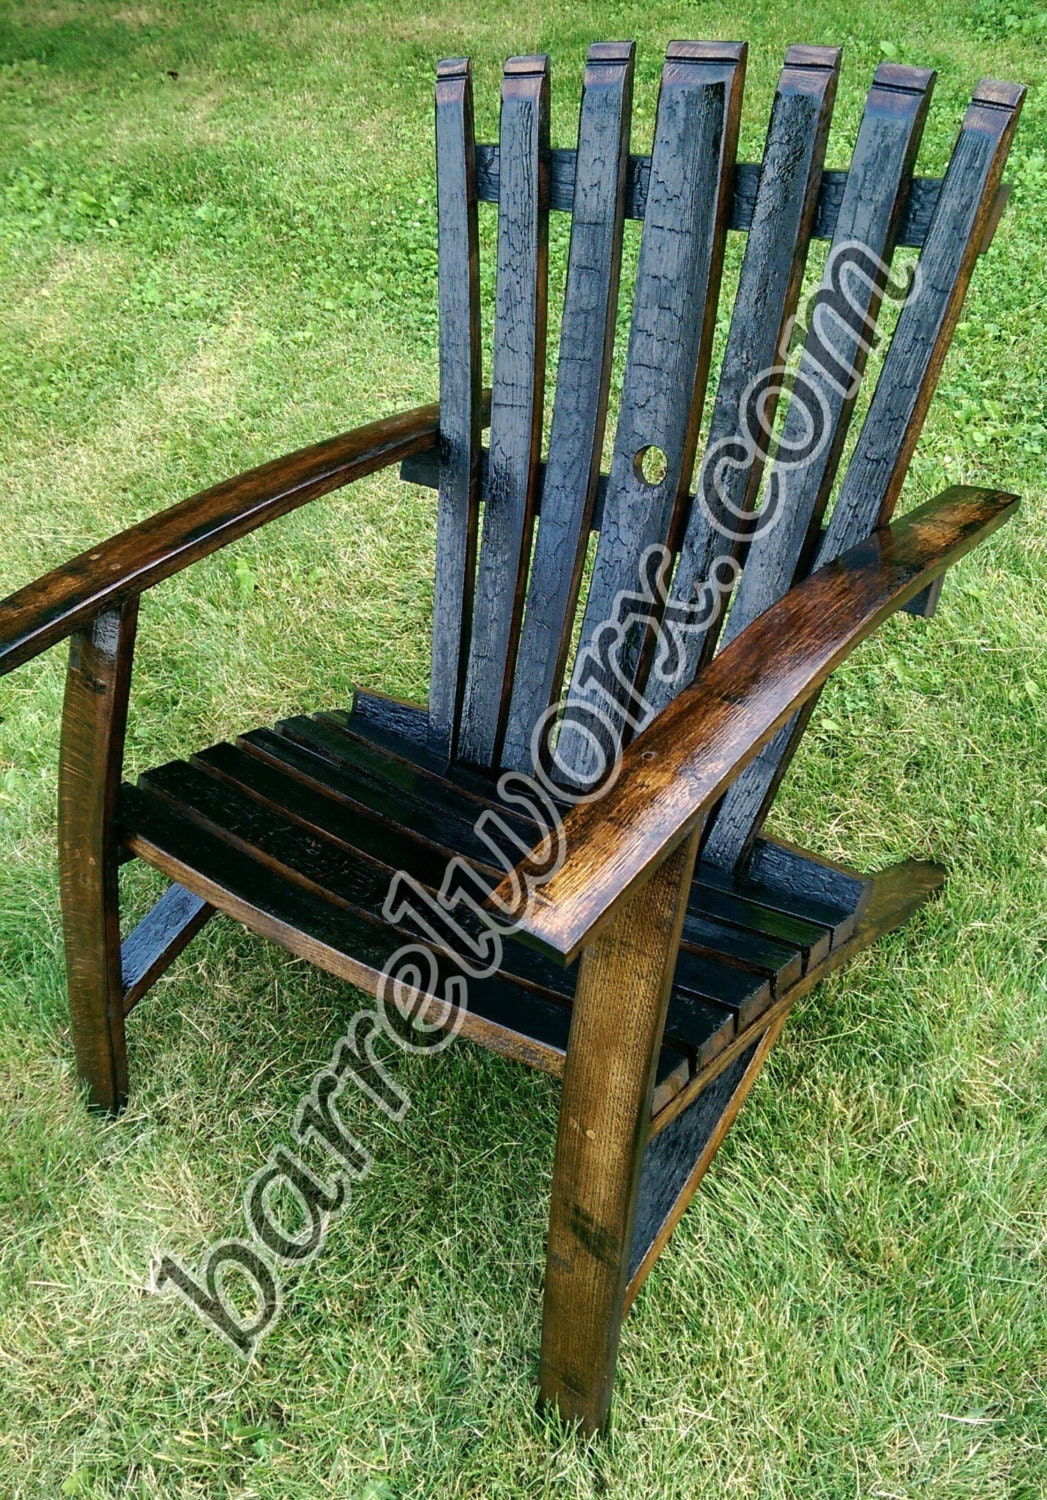 whiskey barrel stave adirondack chair. Black Bedroom Furniture Sets. Home Design Ideas